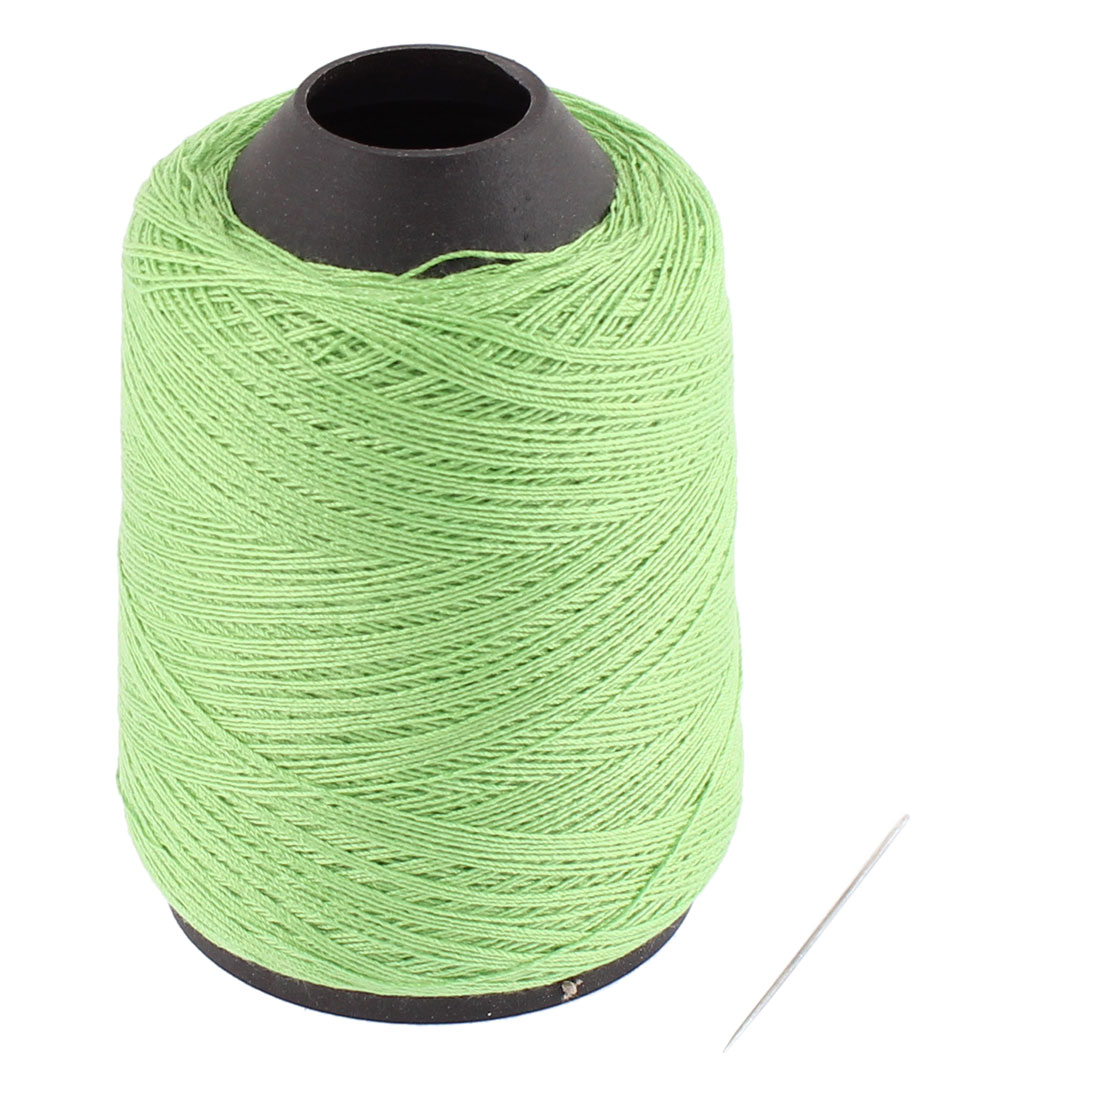 Tailor Machine Clothing Sewing Stitching Thread String Reel Spool Green